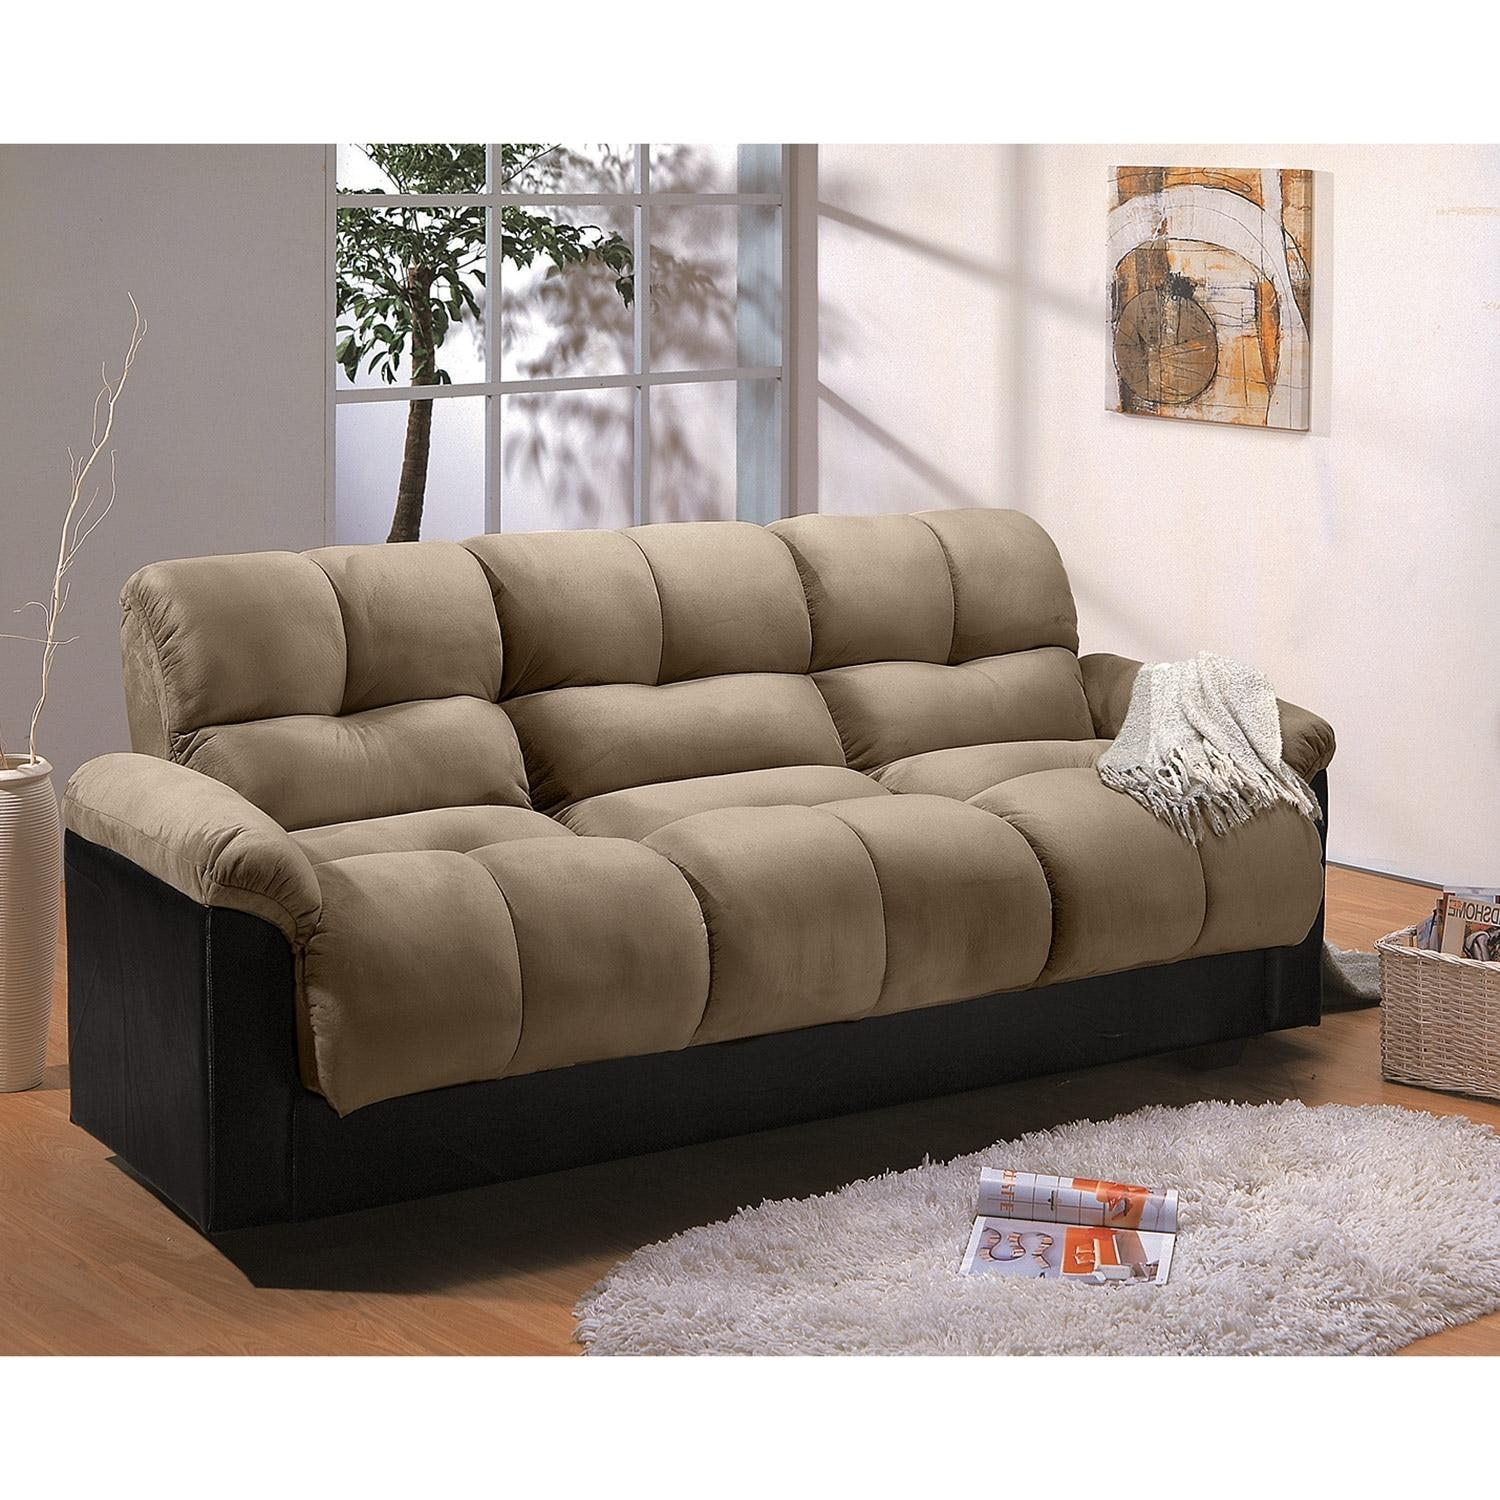 Ara Futon Sofa Bed With Storage – Hazelnut | Value City Furniture Throughout Leather Fouton Sofas (Image 1 of 20)